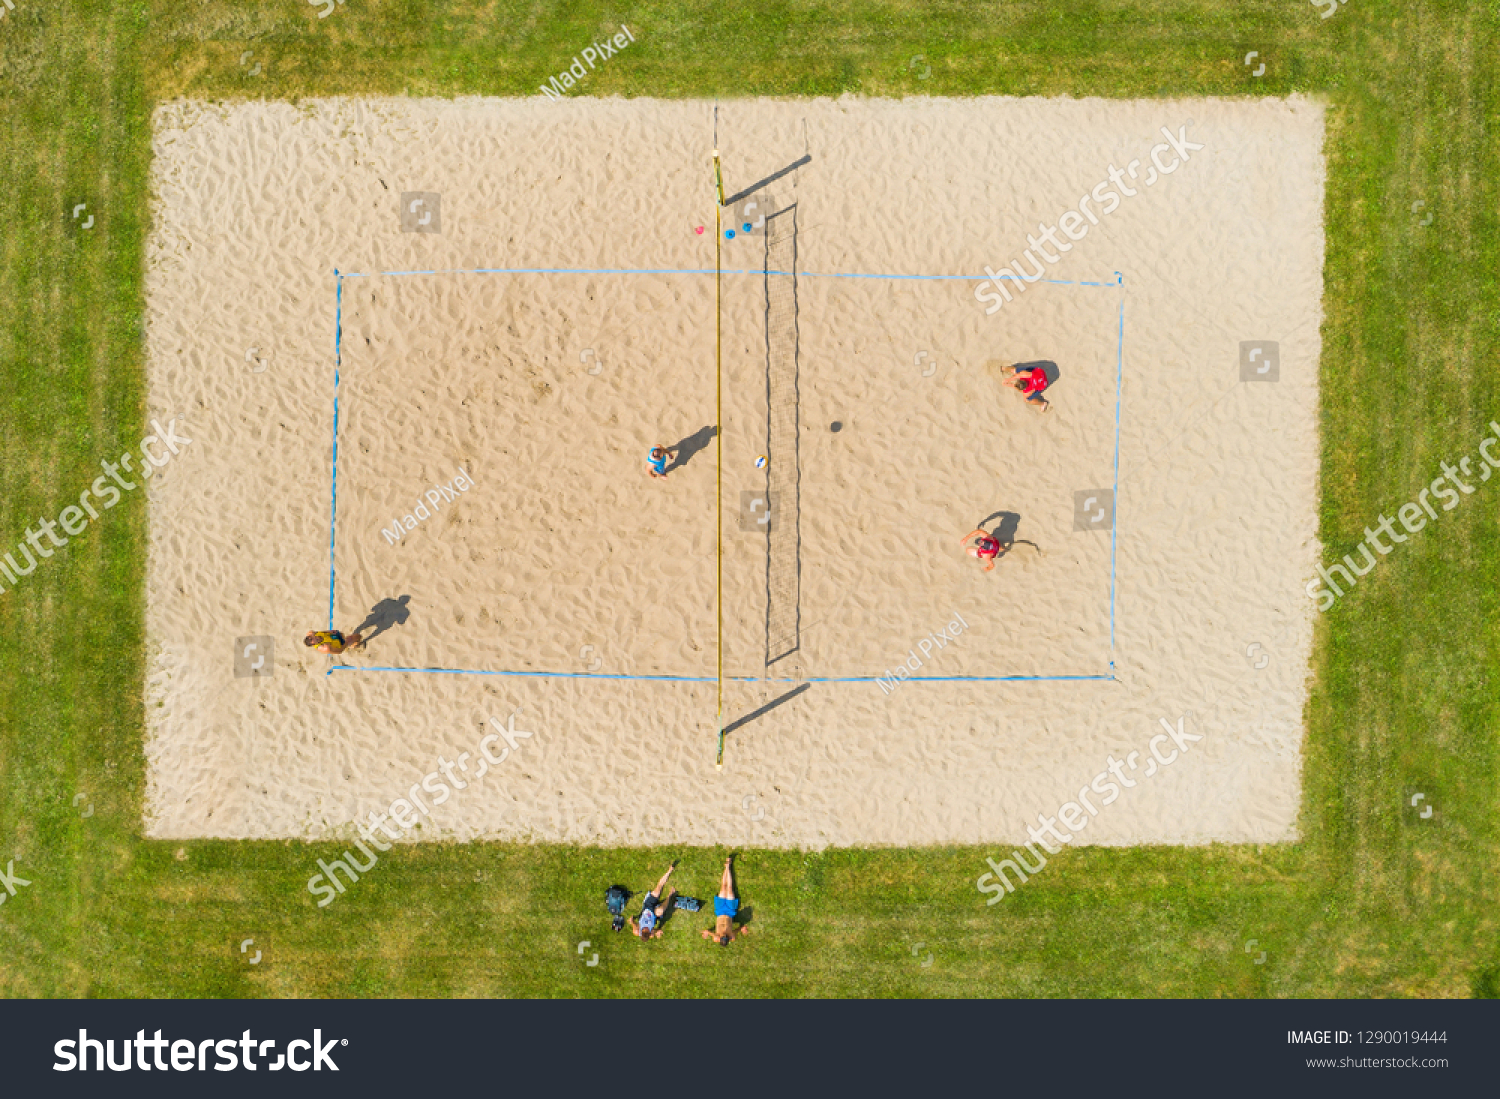 Volleyball Match On Beach Volleyball Court Sports Recreation Stock Image 1290019444